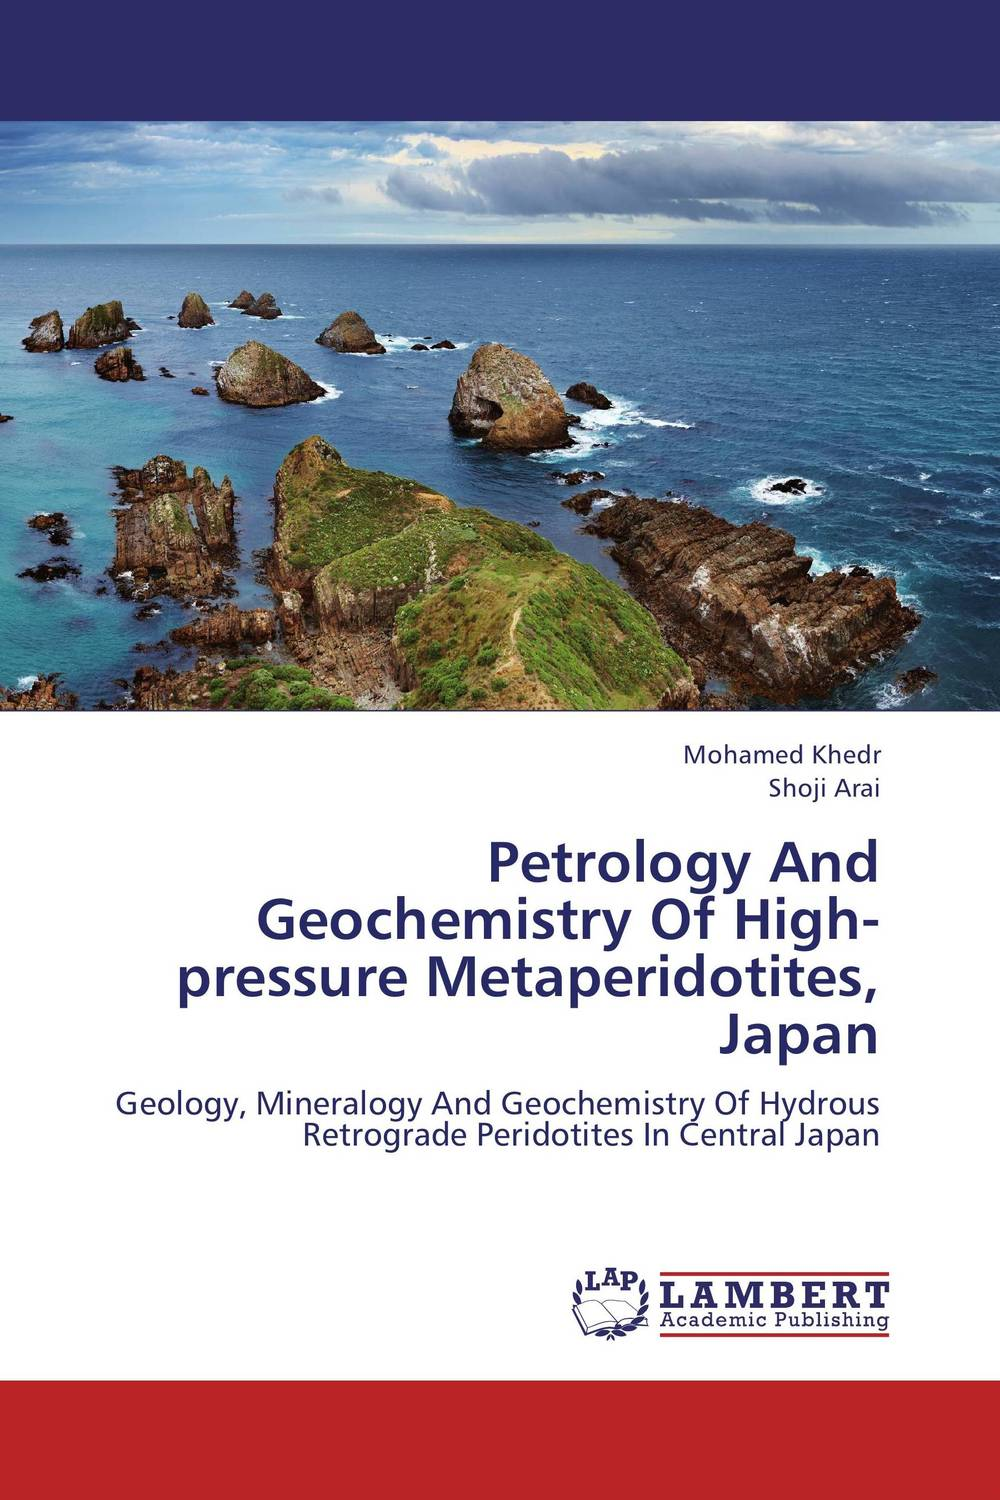 Petrology And Geochemistry Of High-pressure Metaperidotites, Japan nforba melvin tamnta and cheo emmanuel suh regolith geochemistry and mineralogy derived from itabirite